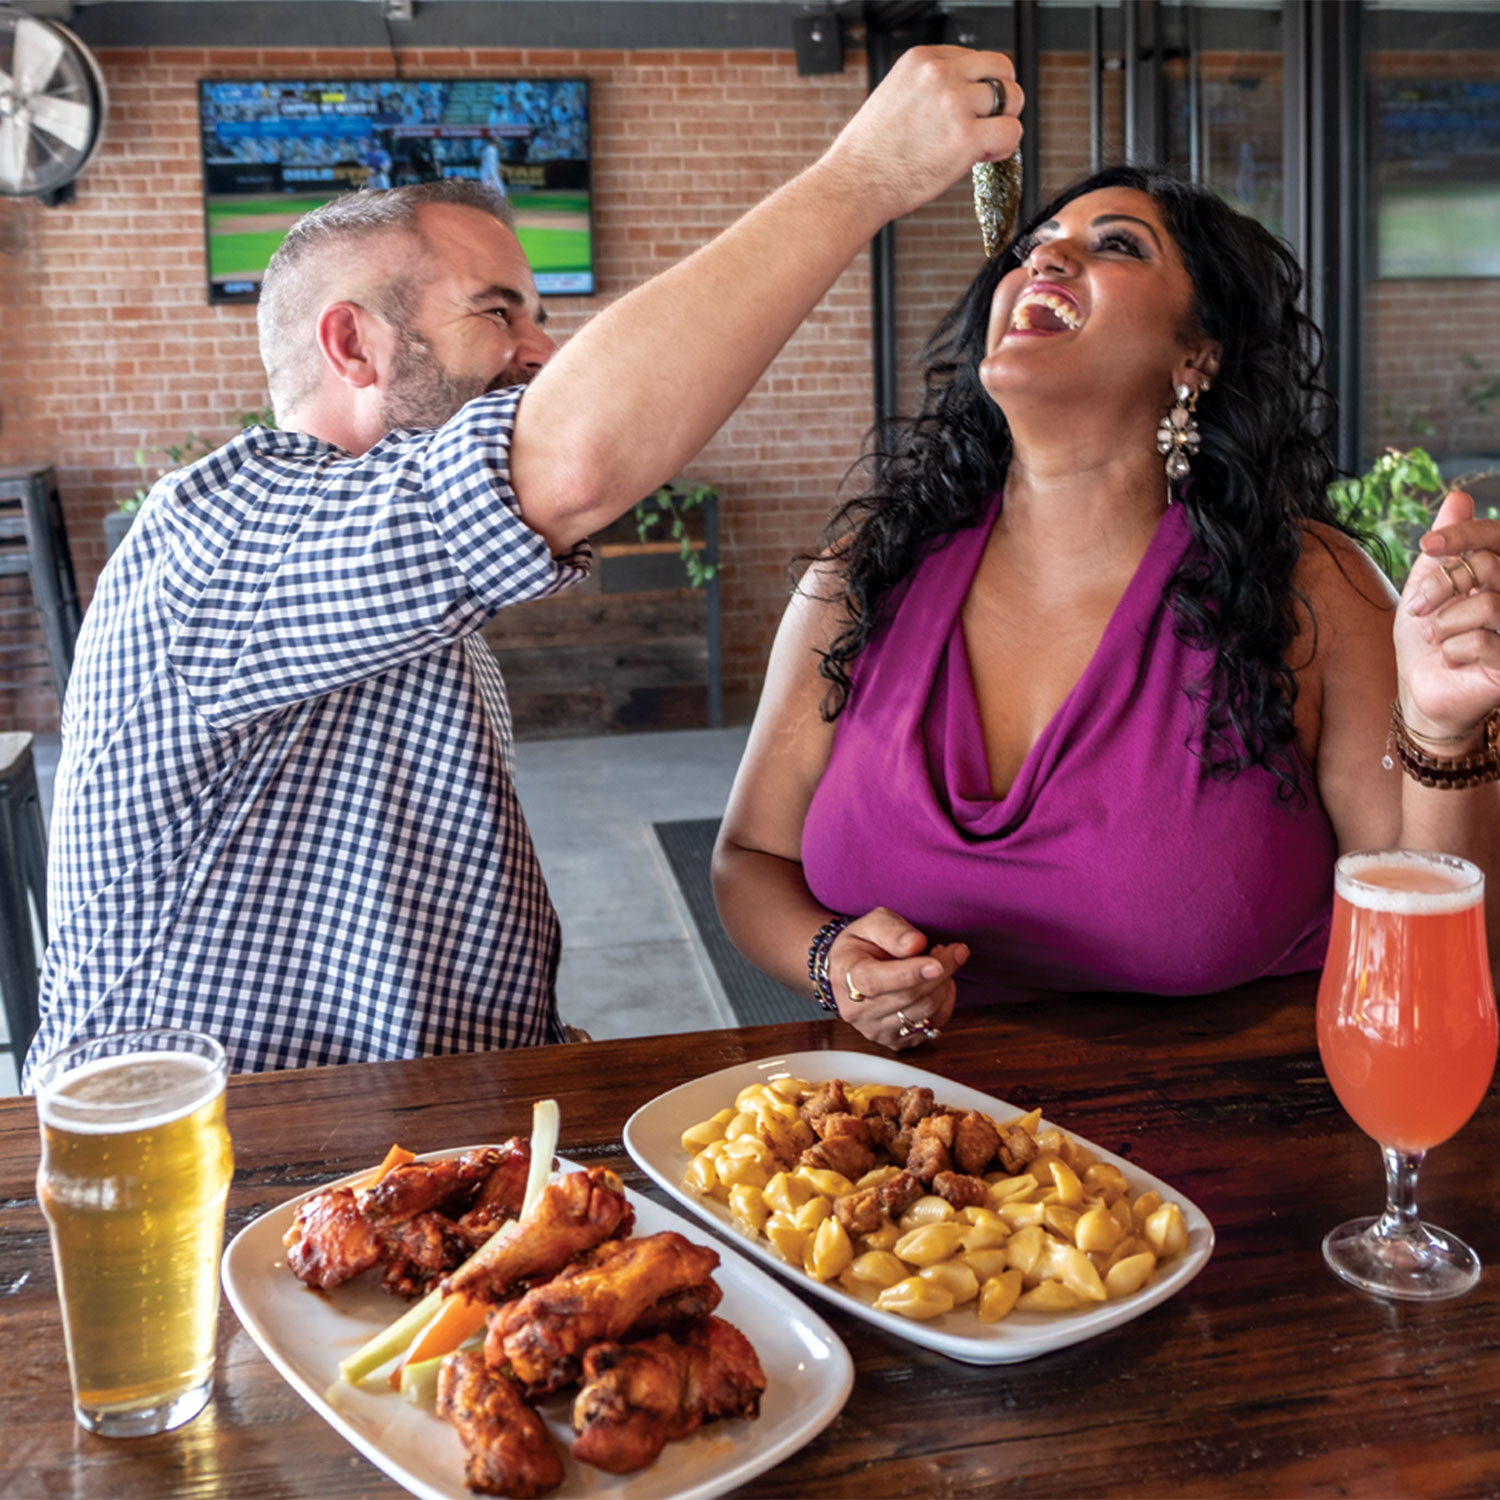 12 West Brewing Co; Photo by Mirelle Inglefield, Models: Kirti Dwivedi and Bobby Borszich